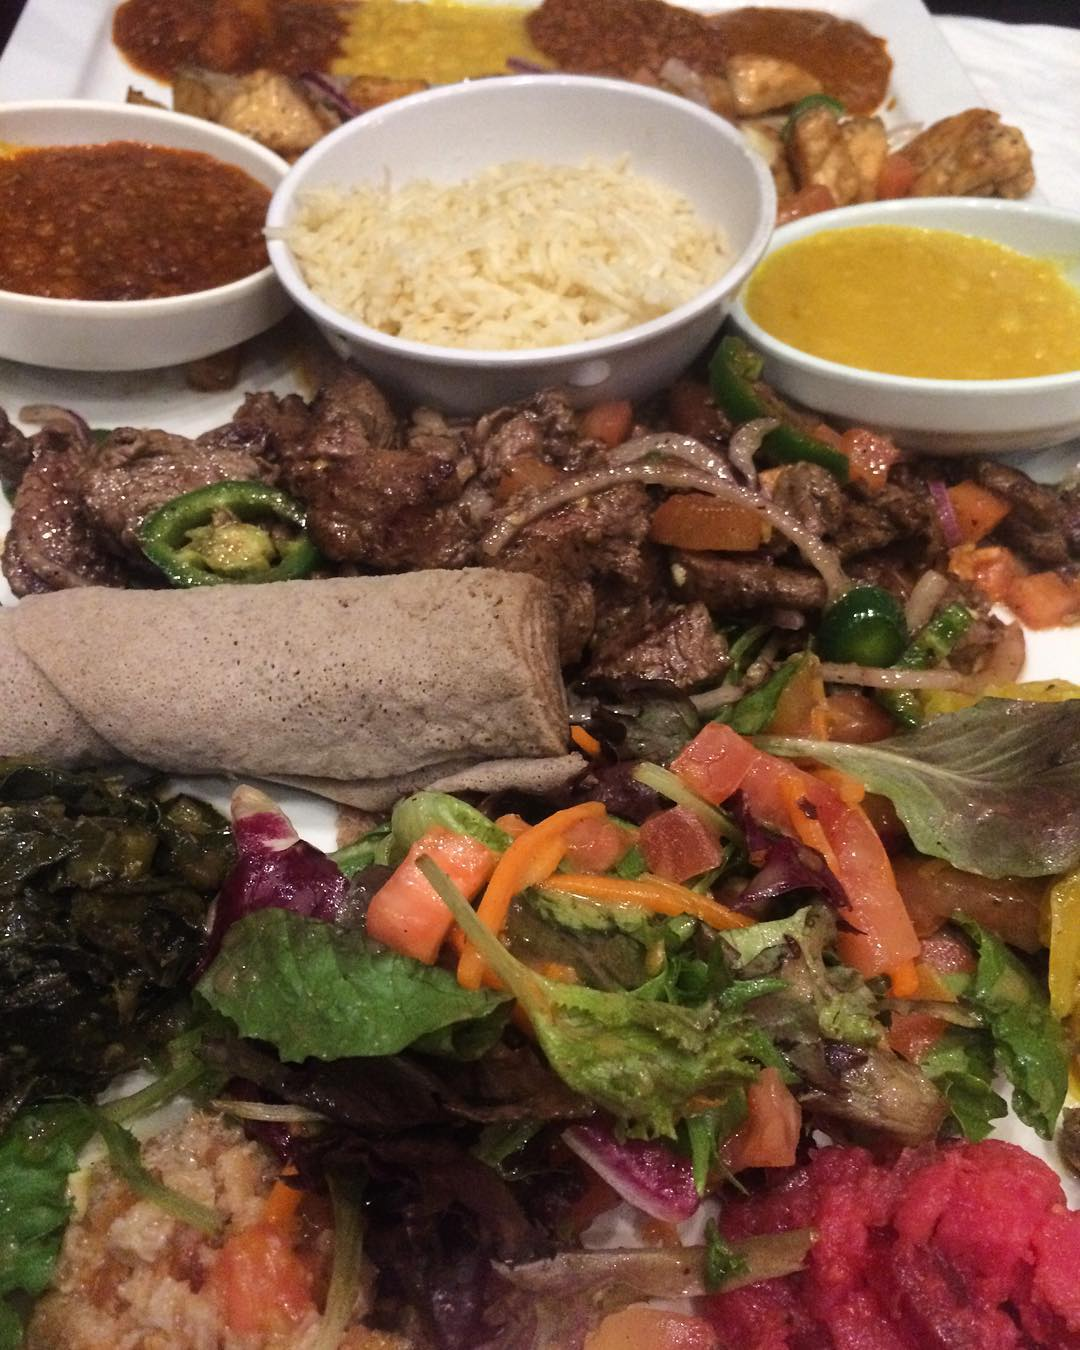 desta ethiopian kitchen visual menureviews by food bloggersinstagrammers - Desta Ethiopian Kitchen